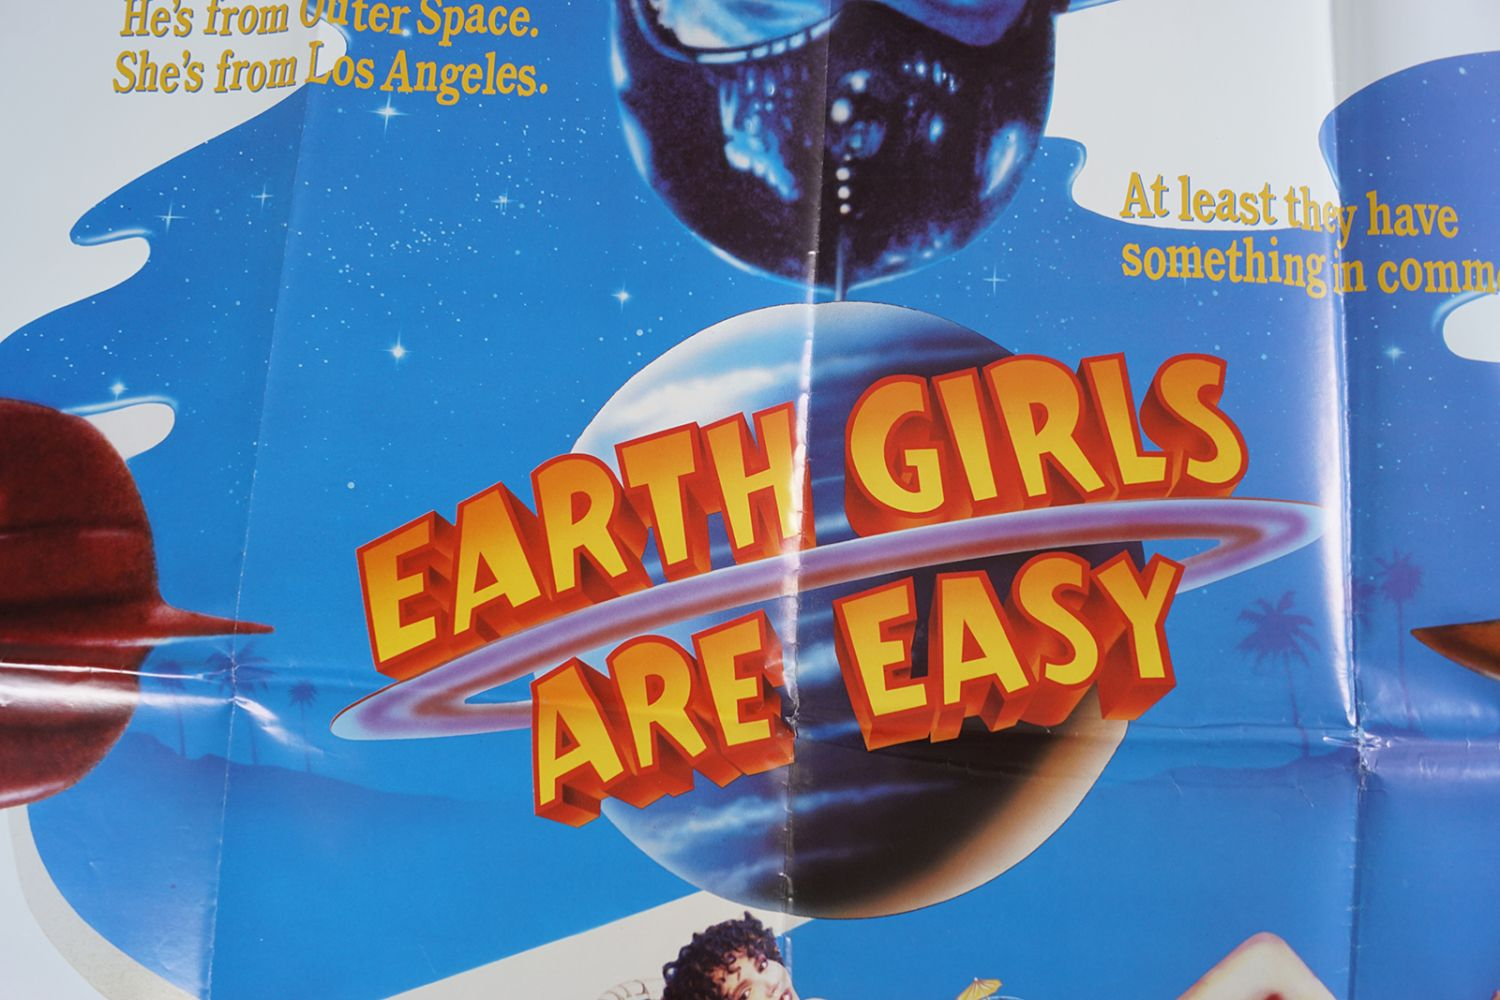 EARTH GIRLS ARE EASY - Image 2 of 2